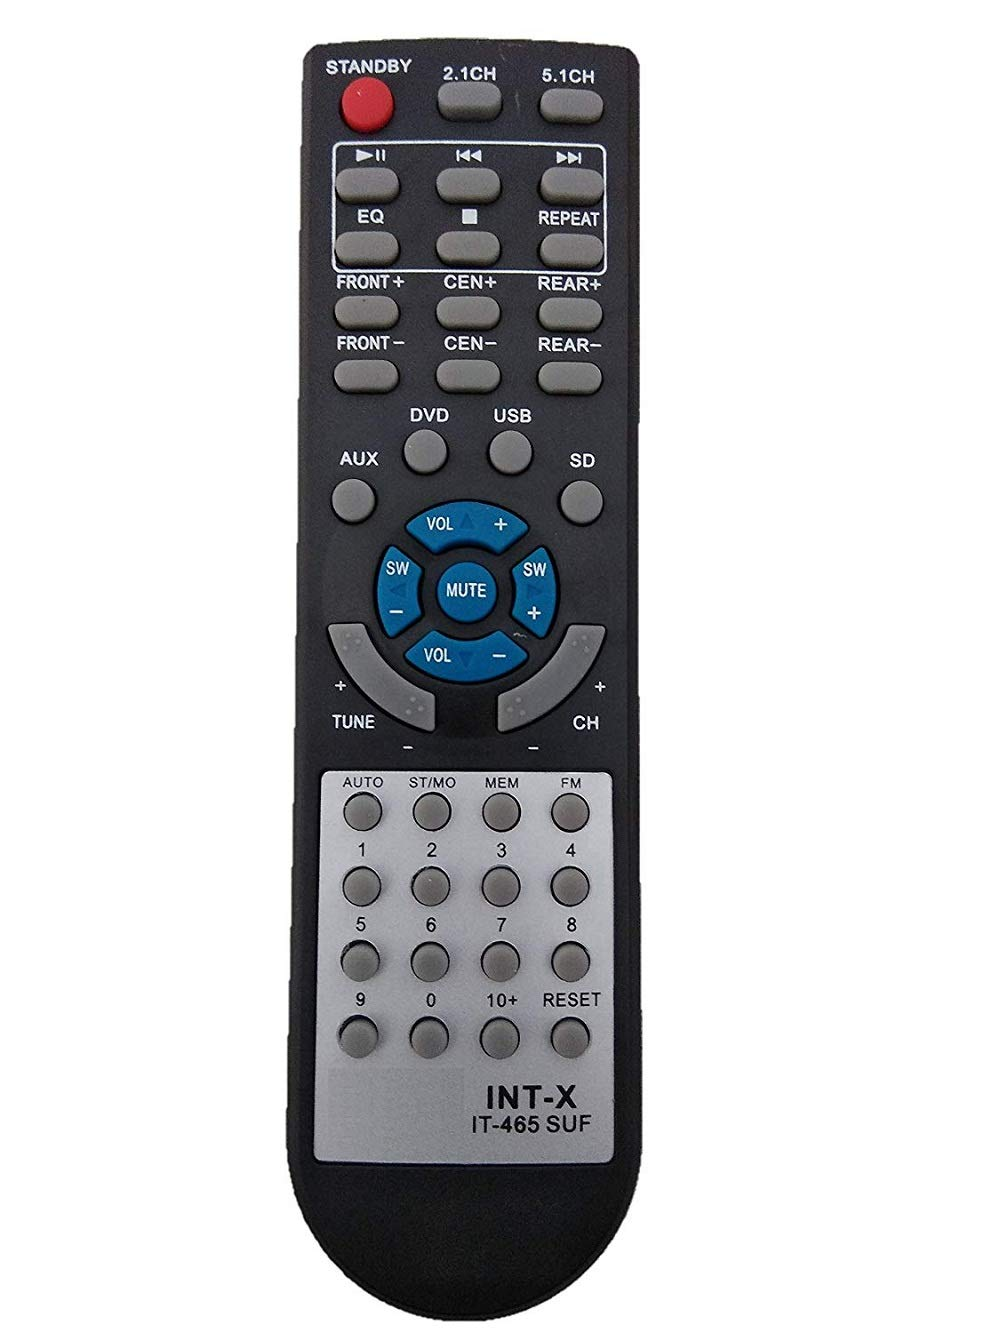 BhalTech IT-465 SUF 2.1/5.1 CH AUX USB Home Theater System Remote Control Compatible for Home Theater INTEX (B07KYDHPFQ) Amazon Price History, Amazon Price Tracker